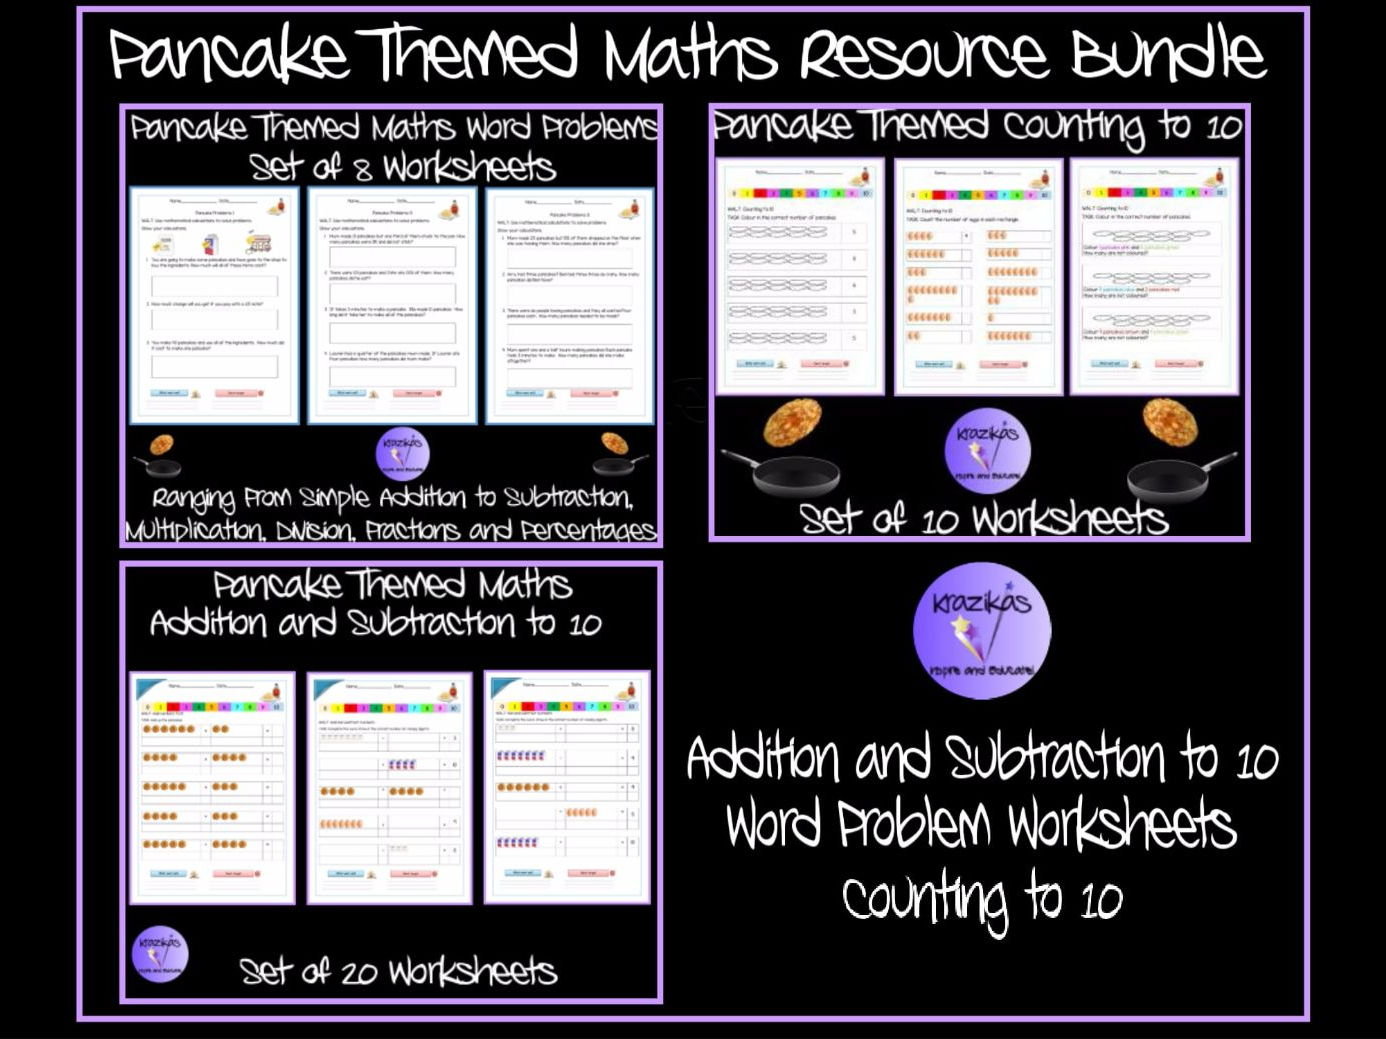 Pancake Themed Maths Resource Bundle - Word problems, Counting to 10